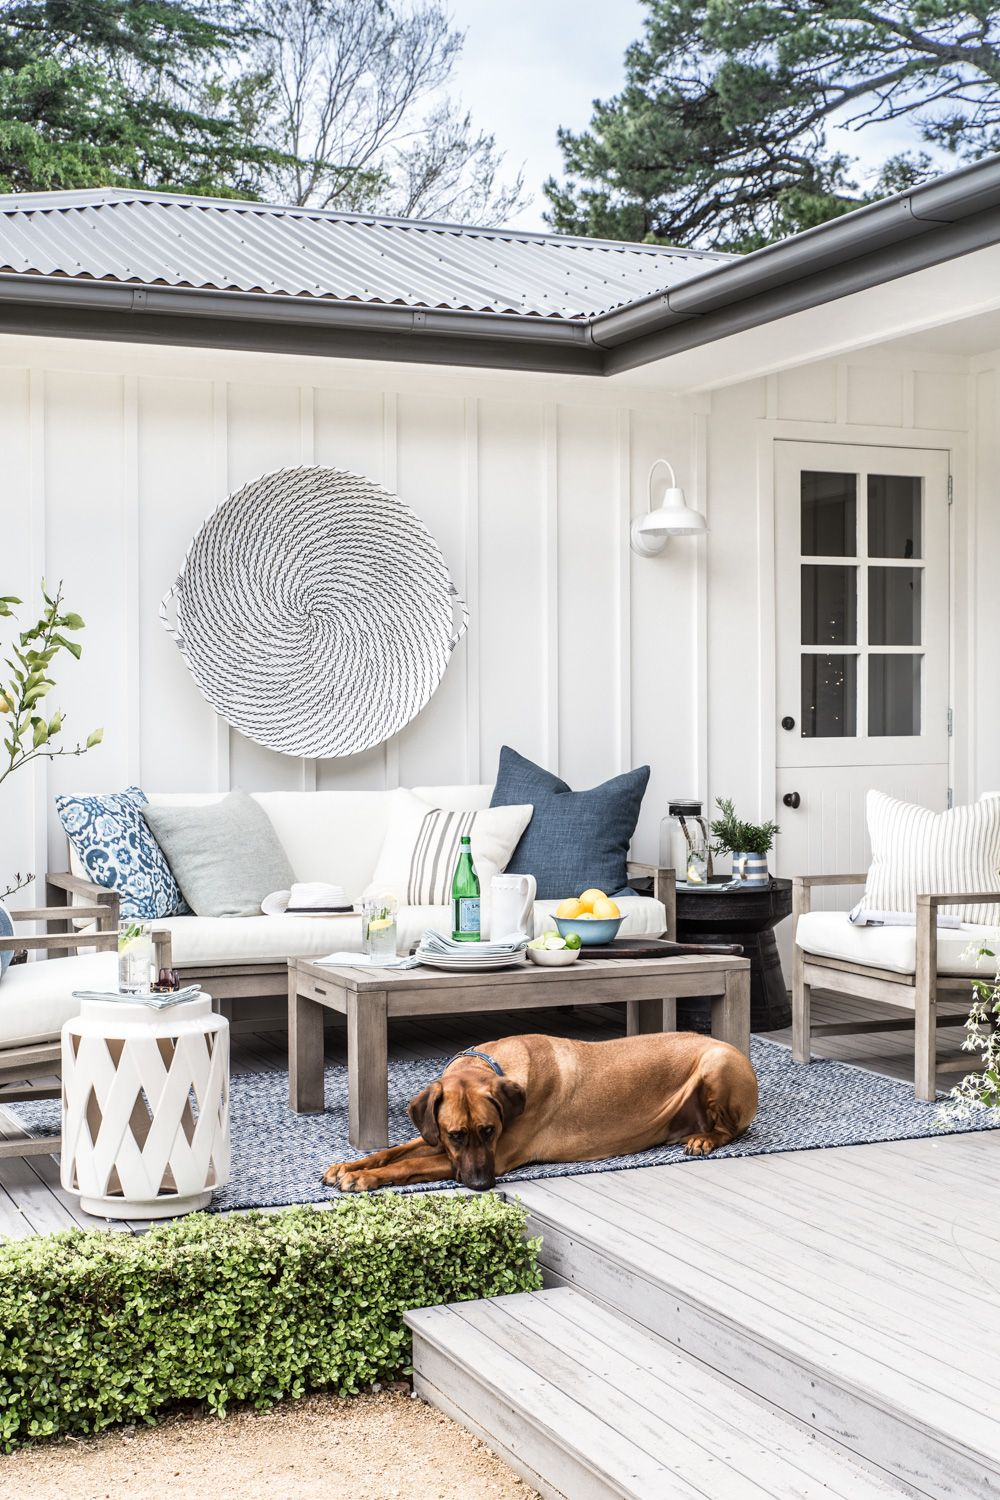 Our Outdoor Makeover With Pottery Barn Cottonwood Co Outdoor Makeover Outdoor Living Rooms Outdoor Living